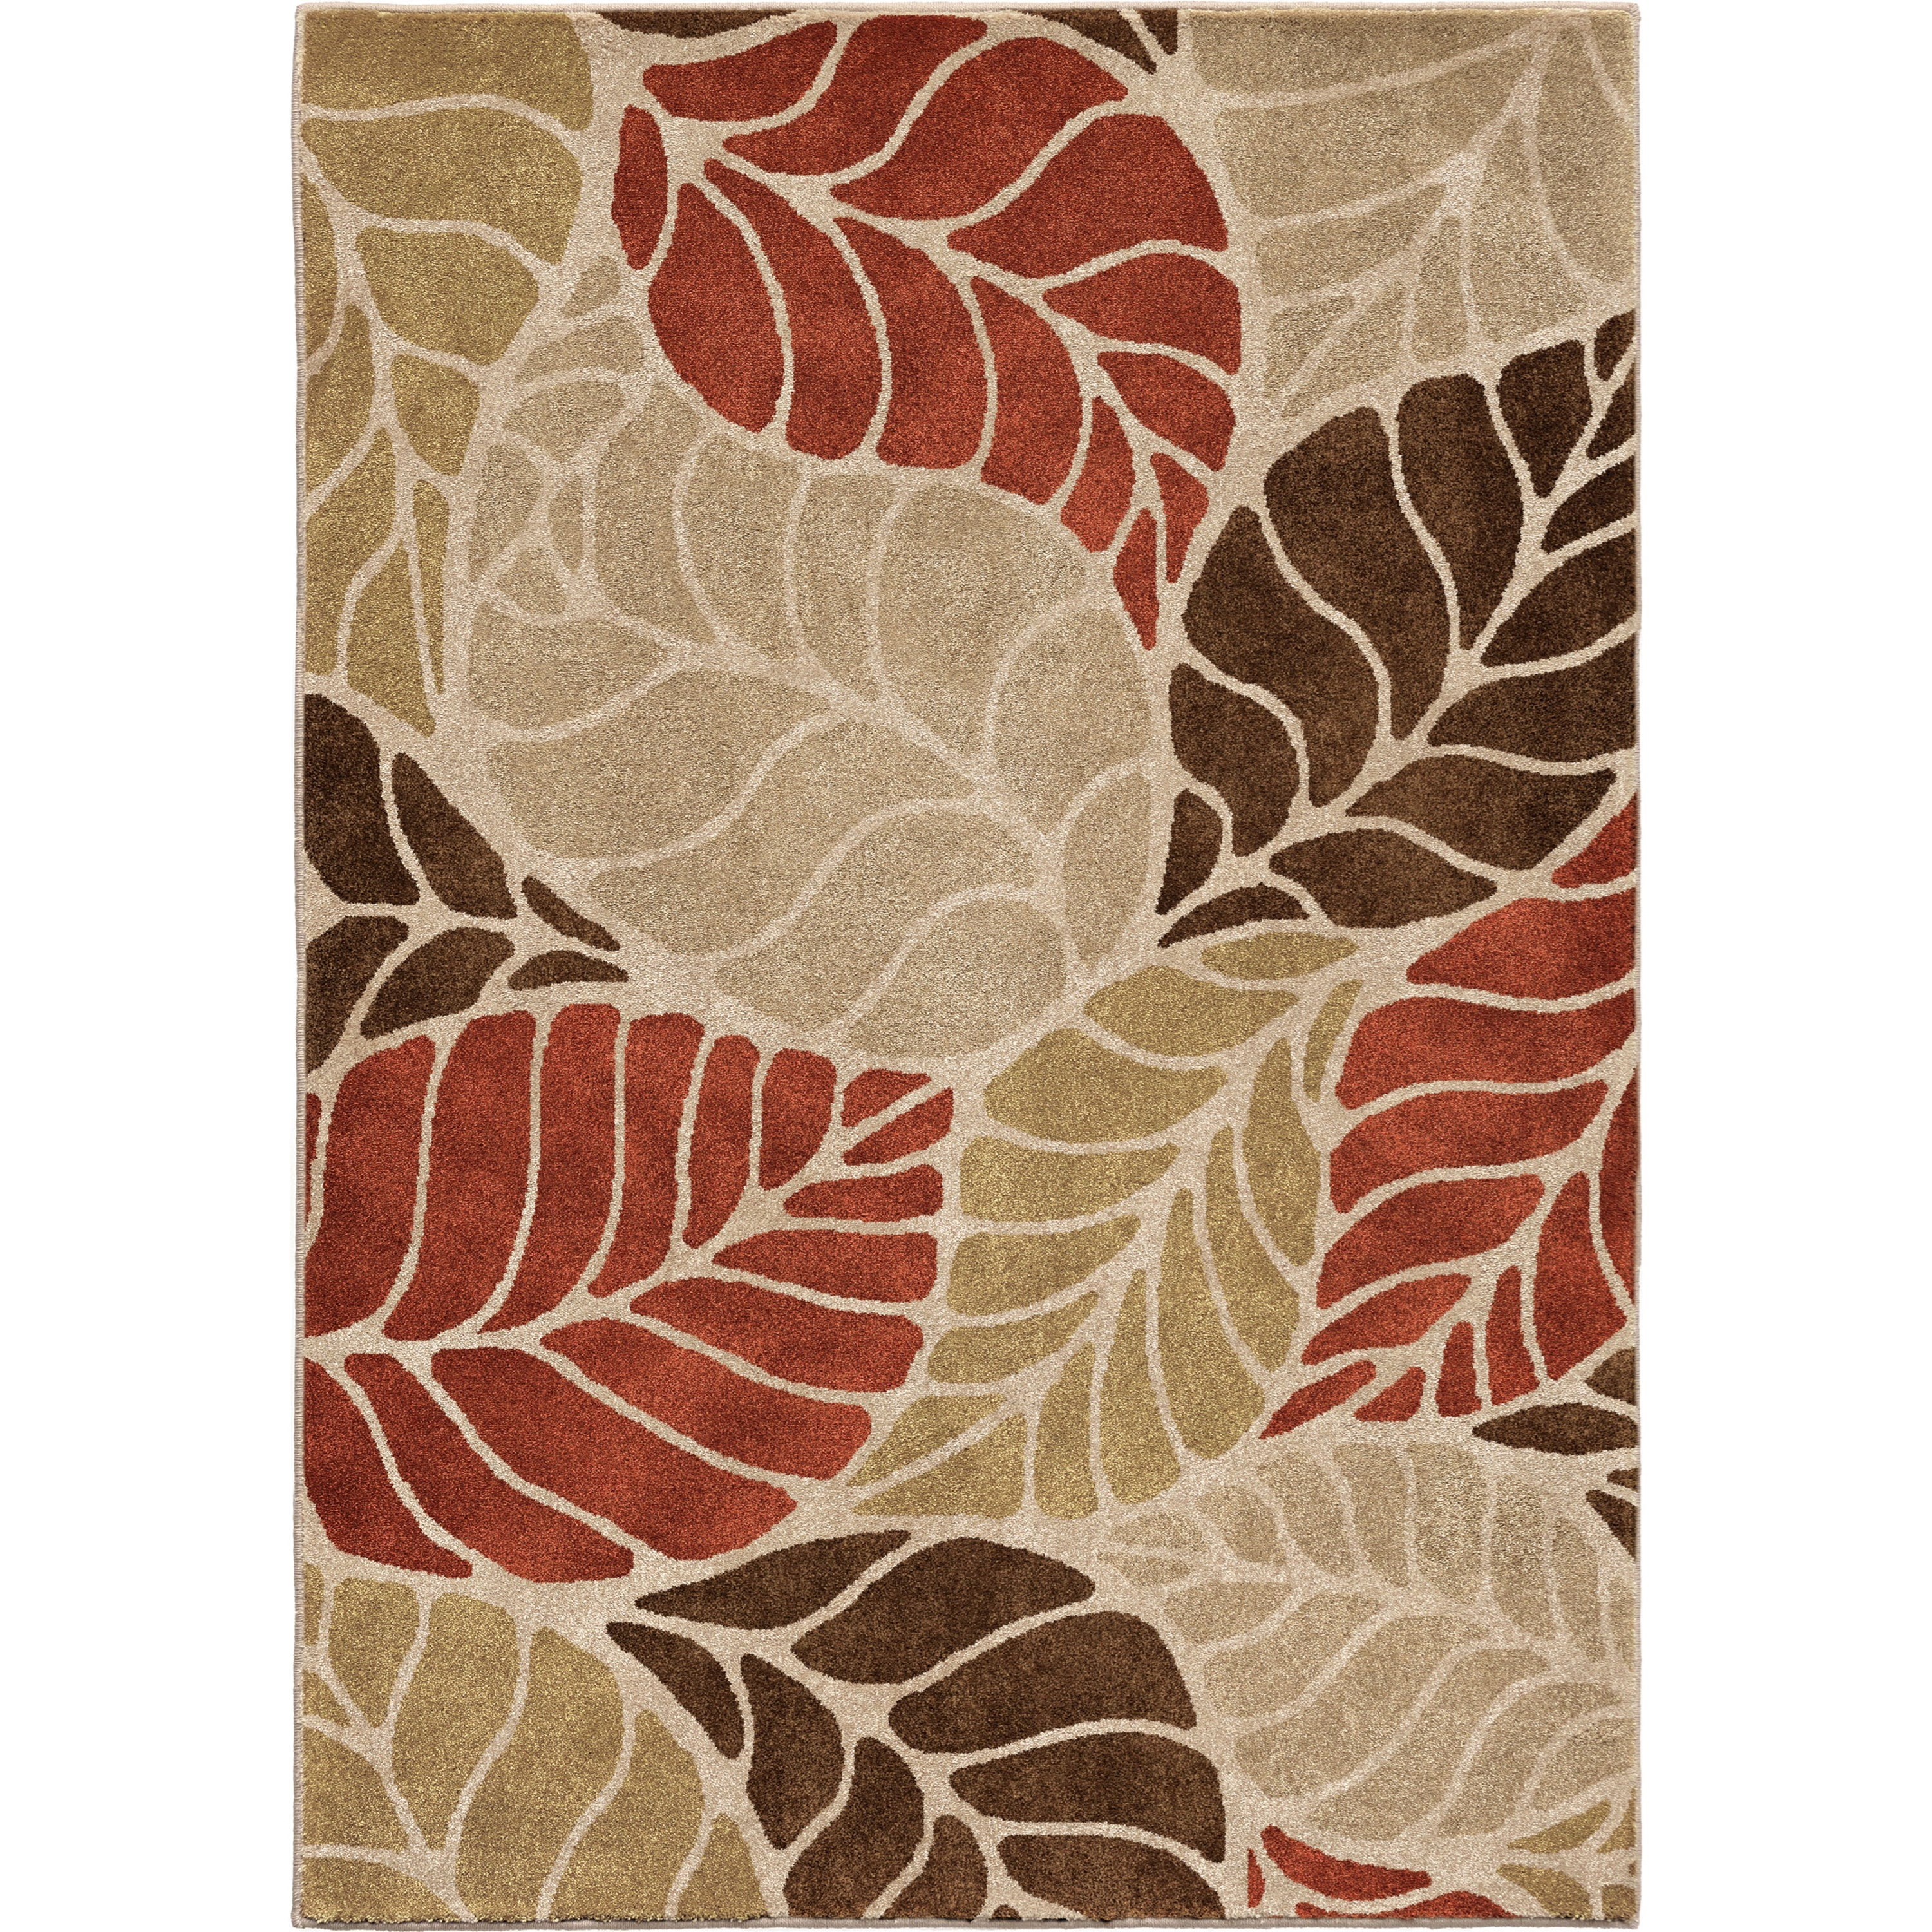 """Radiance Palm Overlay Multi Beige 5'3"""" x 7'6"""" Rug by Orian Rugs at Mueller Furniture"""